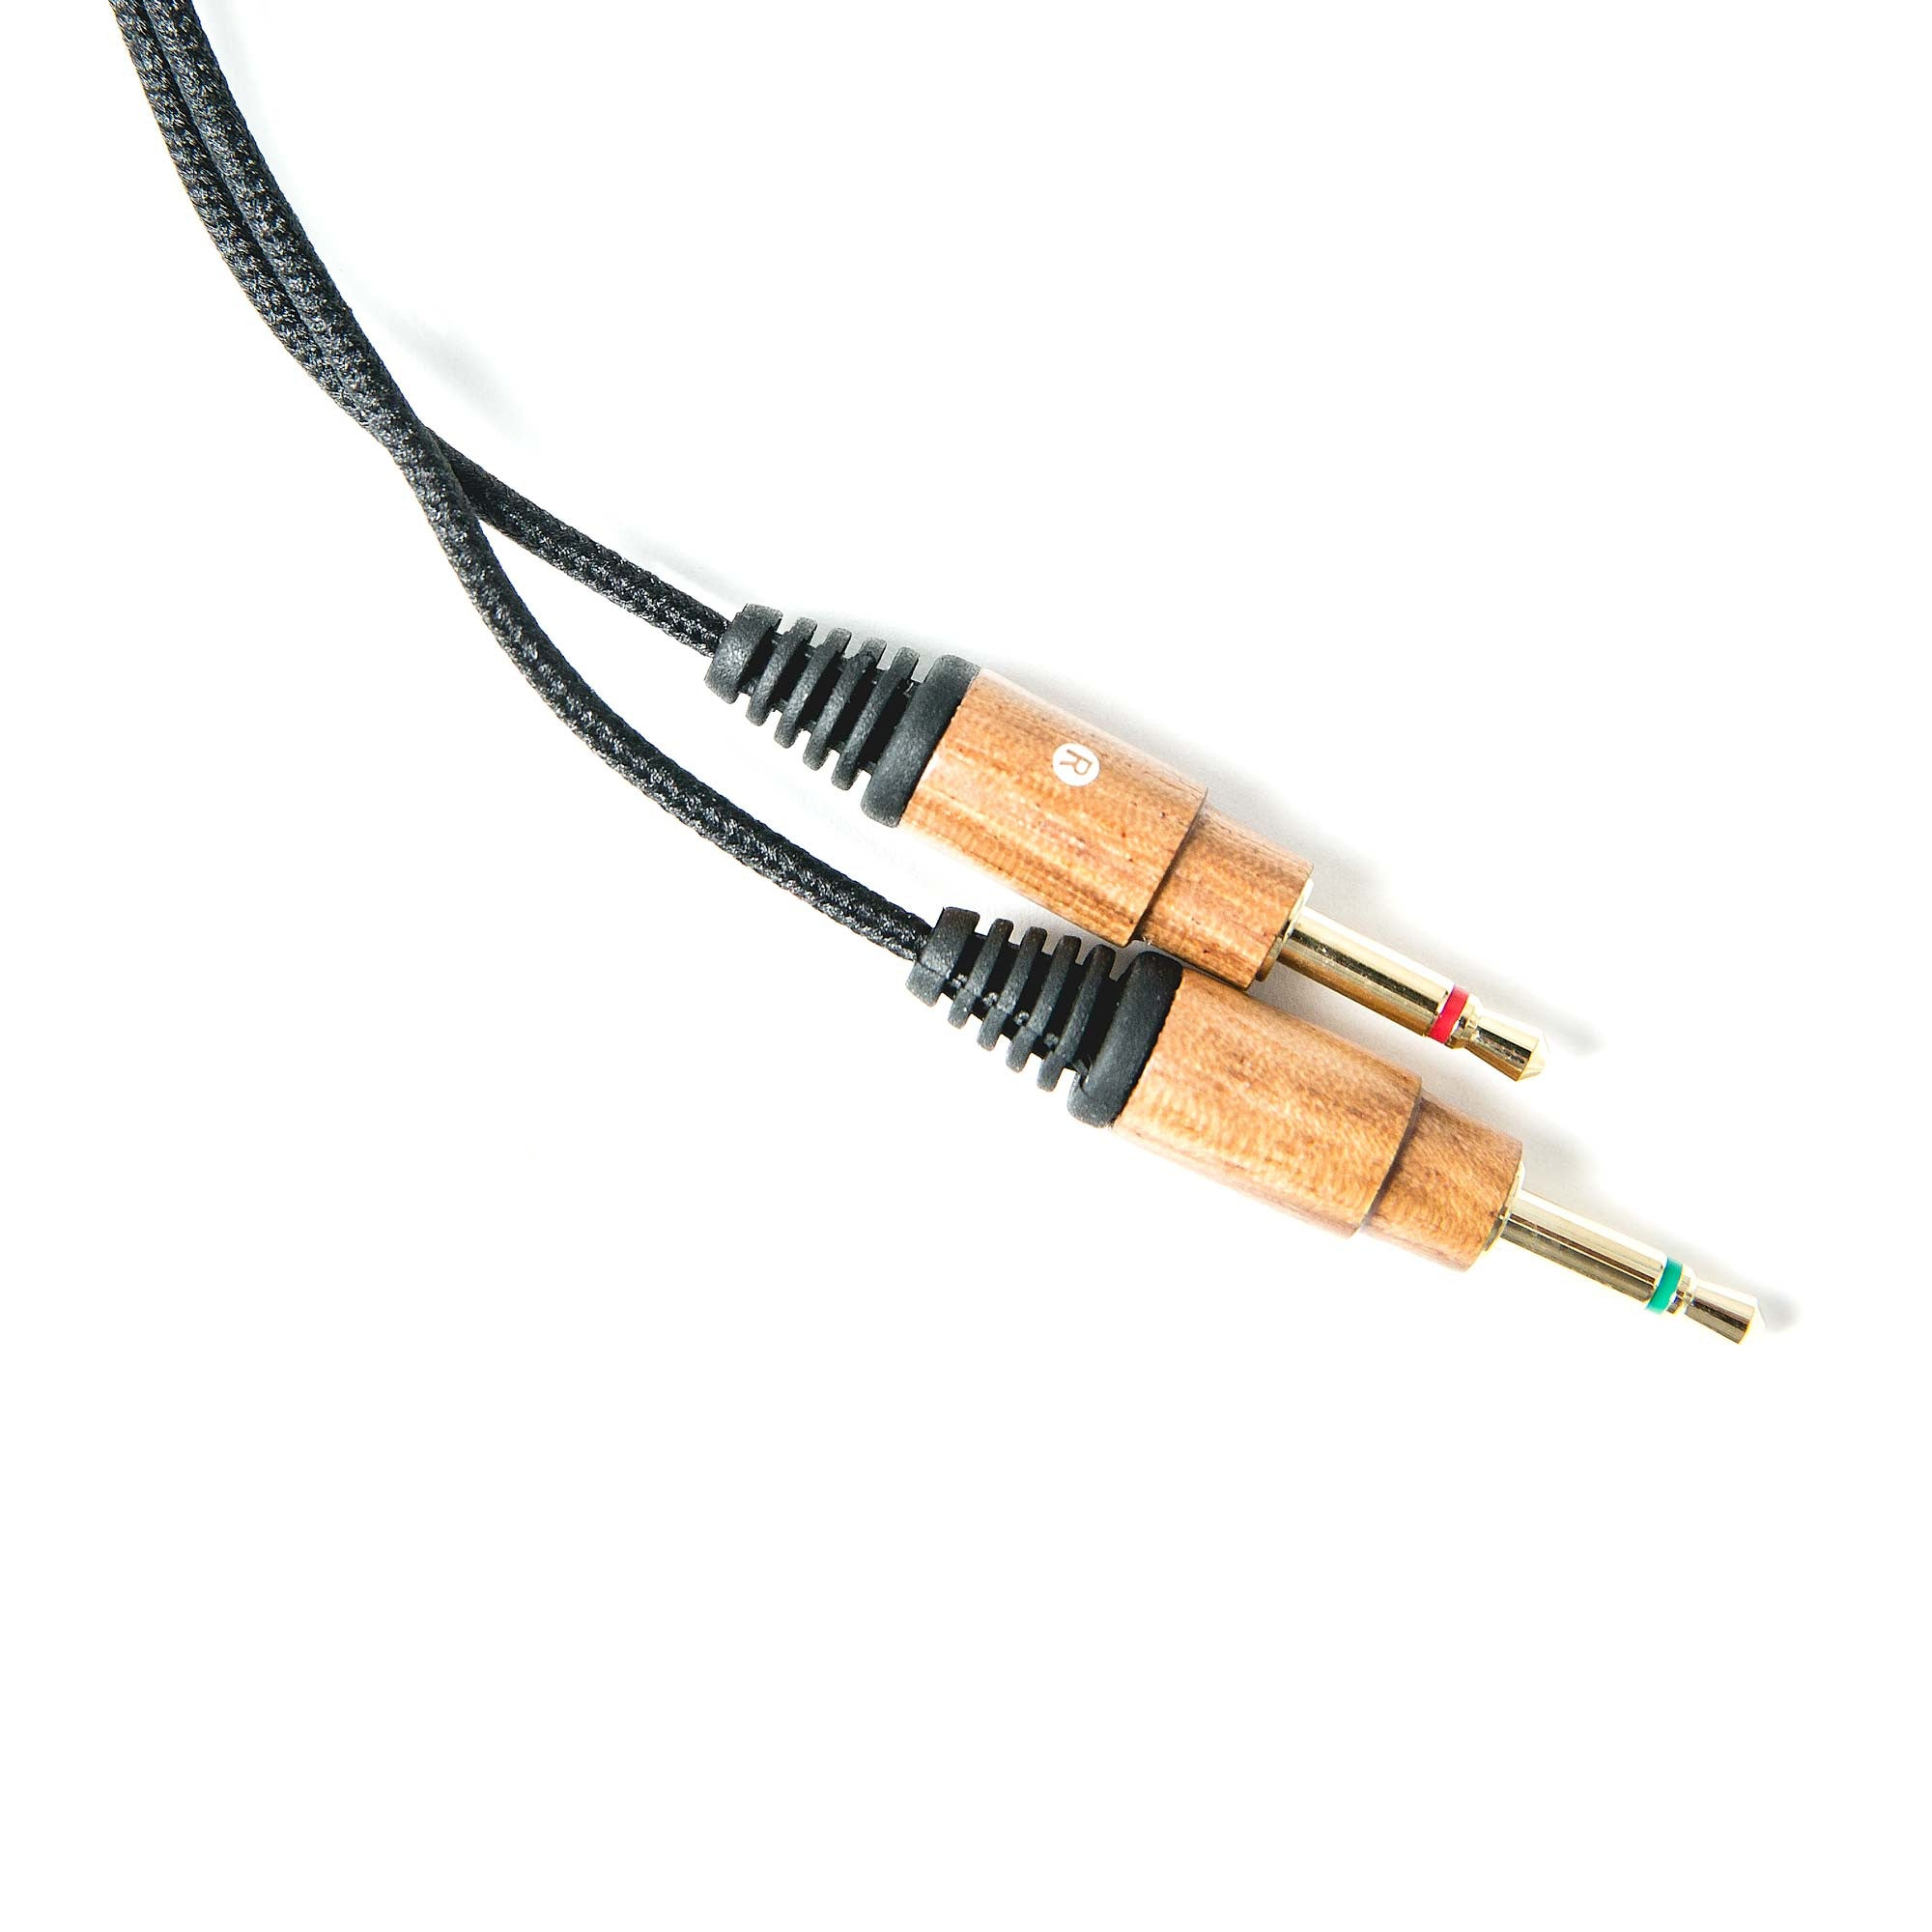 Nylon Replacement Cables w/ Volume Control - Zebra Wood